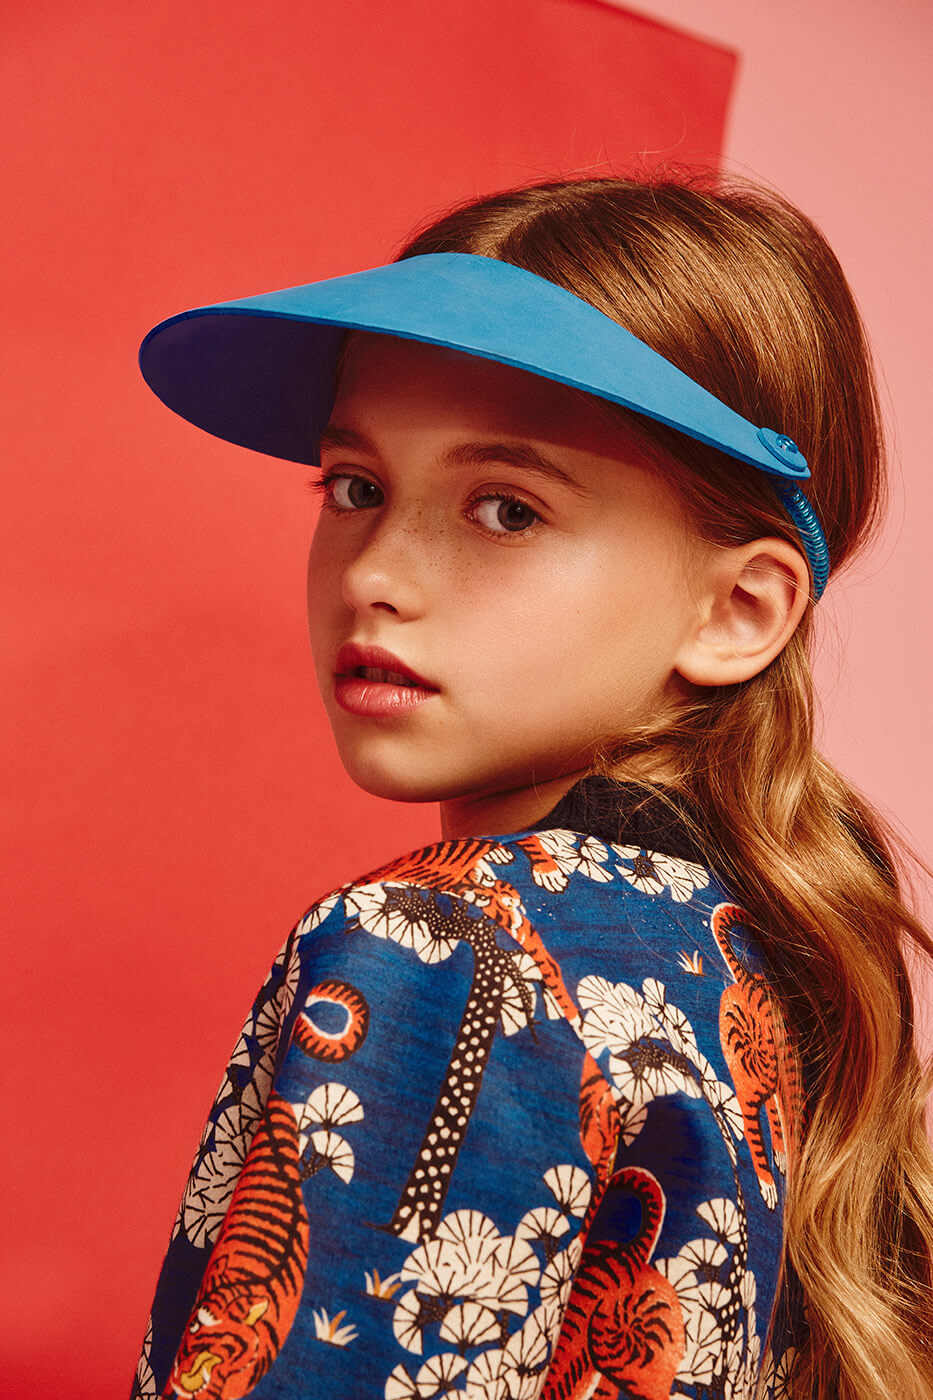 Child Fashion Photography | Gucci Kids | VIKA POBEDA